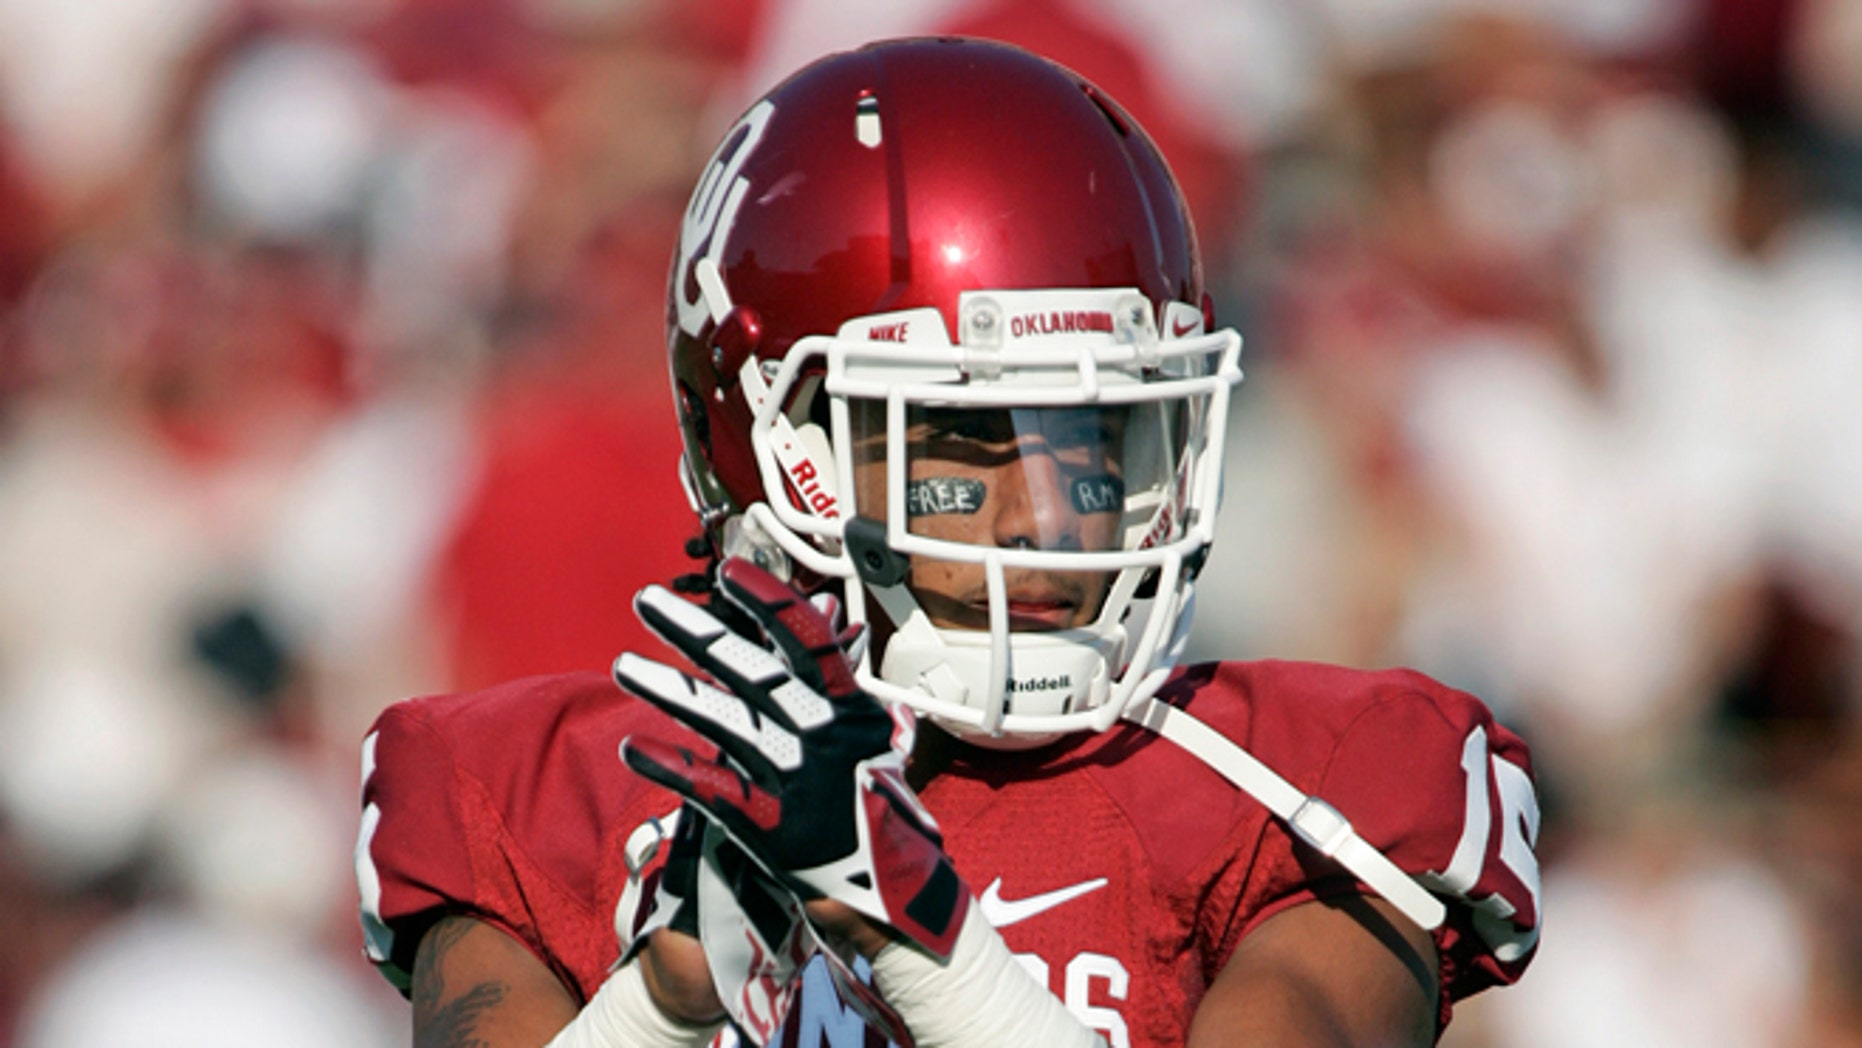 NORMAN, OK - AUGUST 31:  Defensive back Zack Sanchez #15 of the Oklahoma Sooners warms up before the game against the Louisiana-Monroe Warhawks August 31, 2013 at Gaylord Family-Oklahoma Memorial Stadium in Norman, Oklahoma. Oklahoma defeated Louisiana-Monroe 34-0. (Photo by Brett Deering/Getty Images)